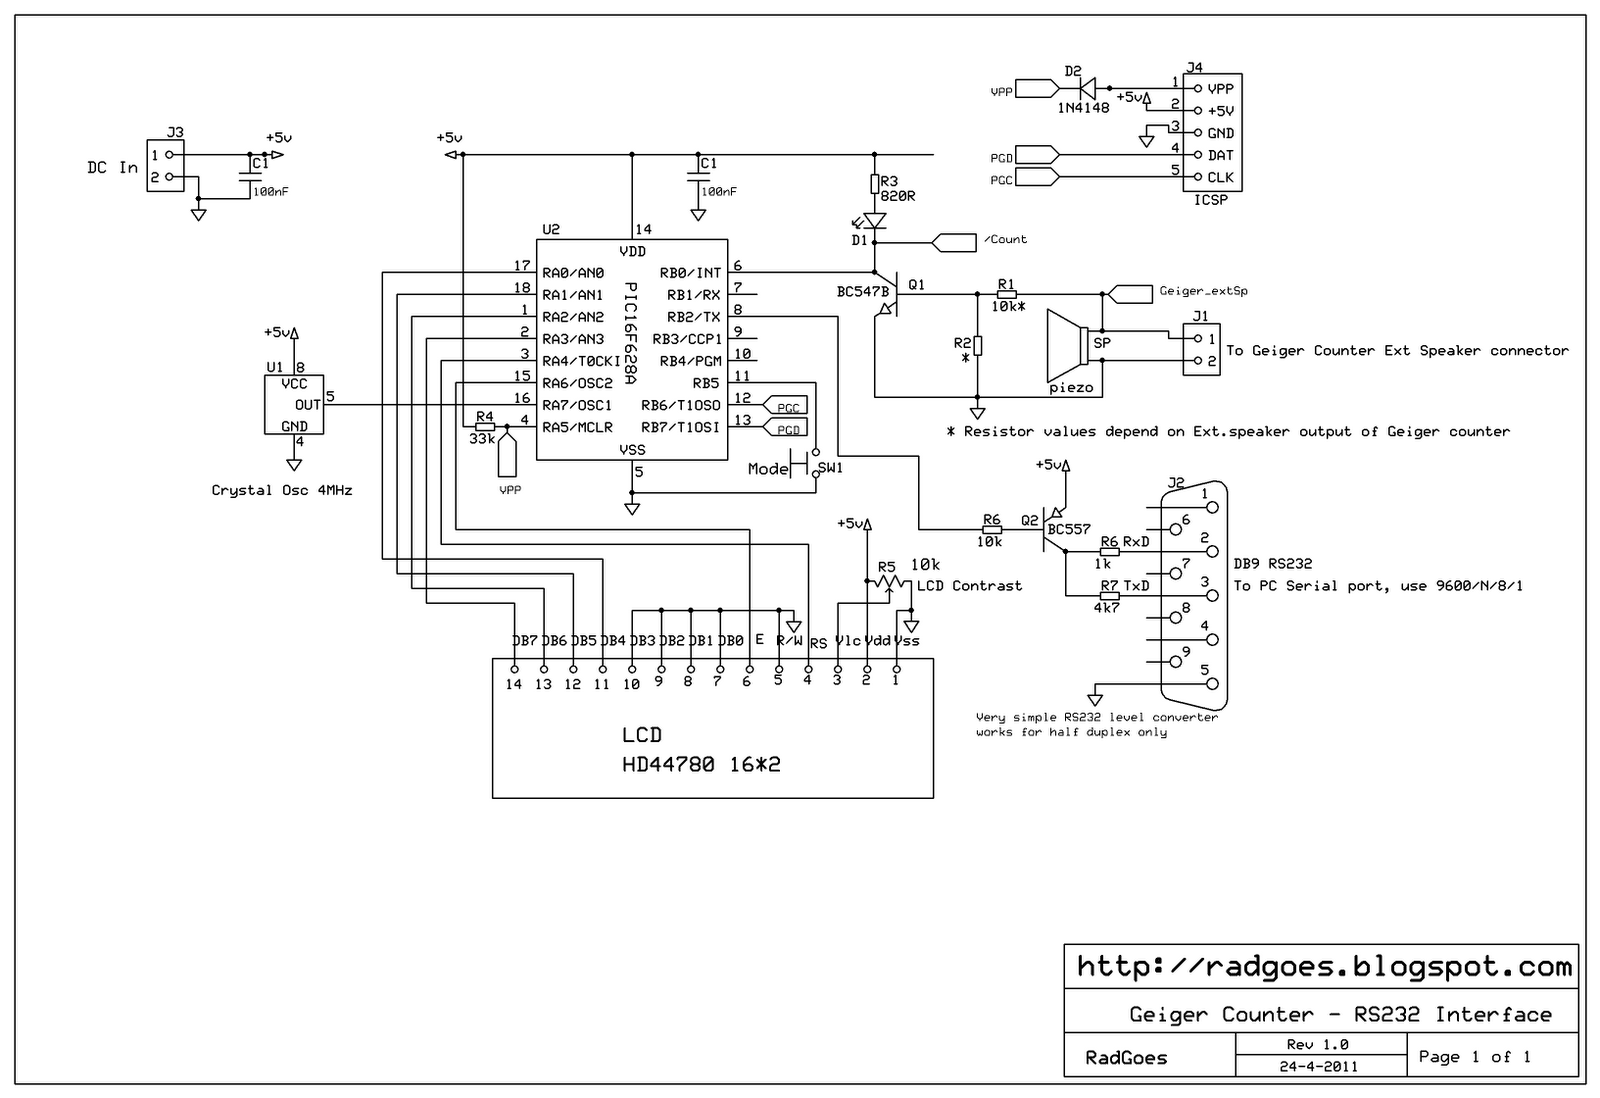 Radiation In Goes Zeeland Nl Geiger Counter Schematic Diagram Computer Here Is The Drawing Click On Image To View Full Size Or Save As